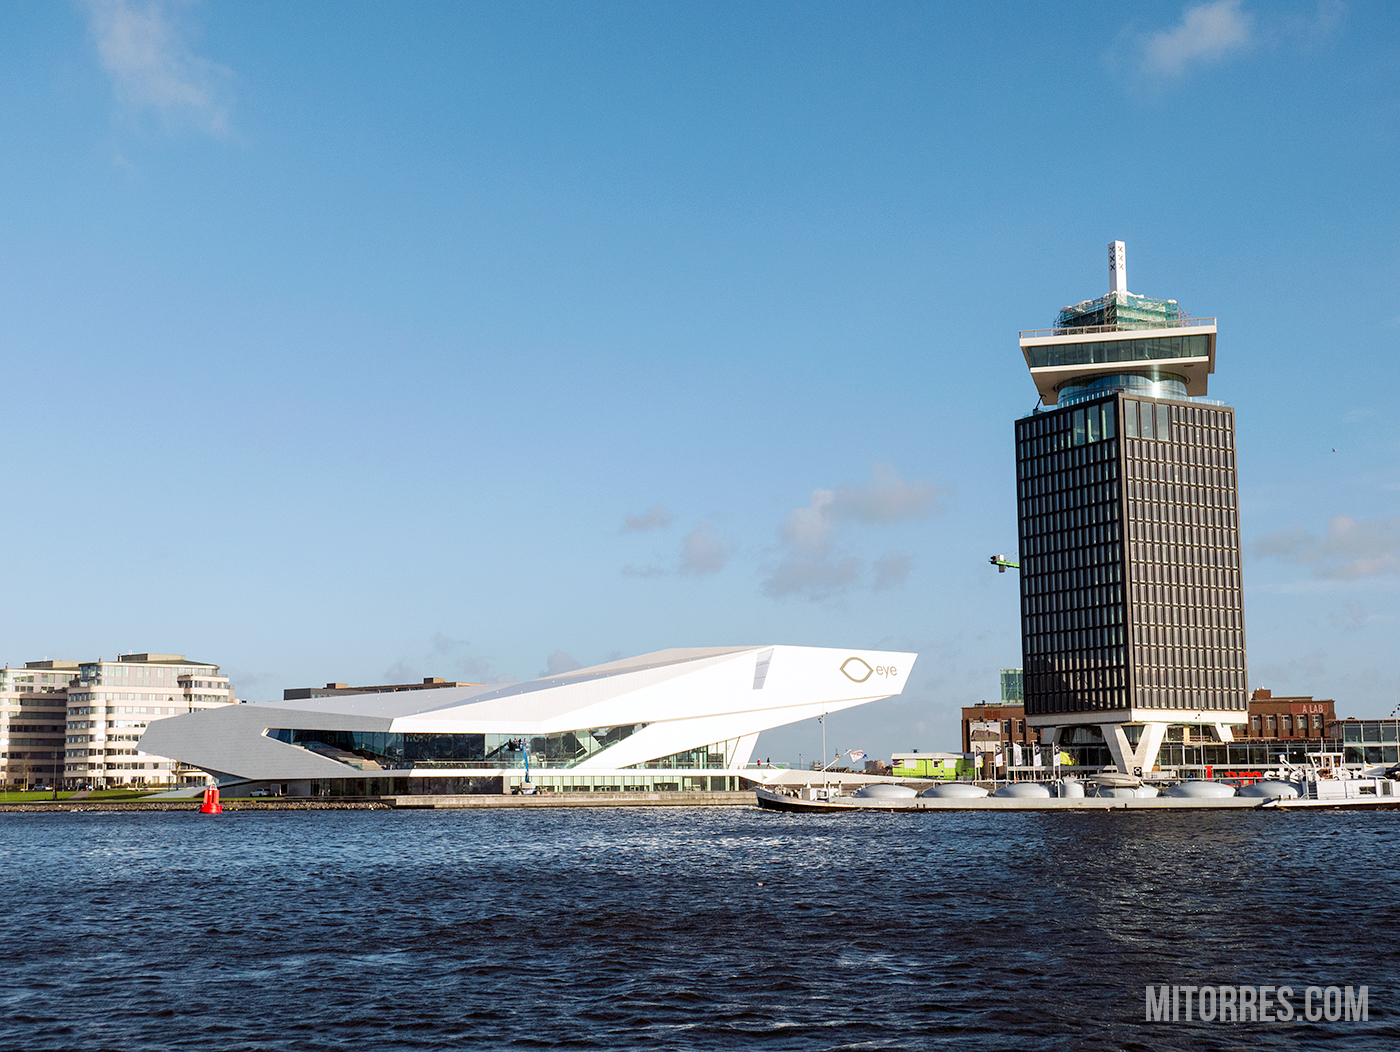 A view of the EYE Film Institute Netherlands.